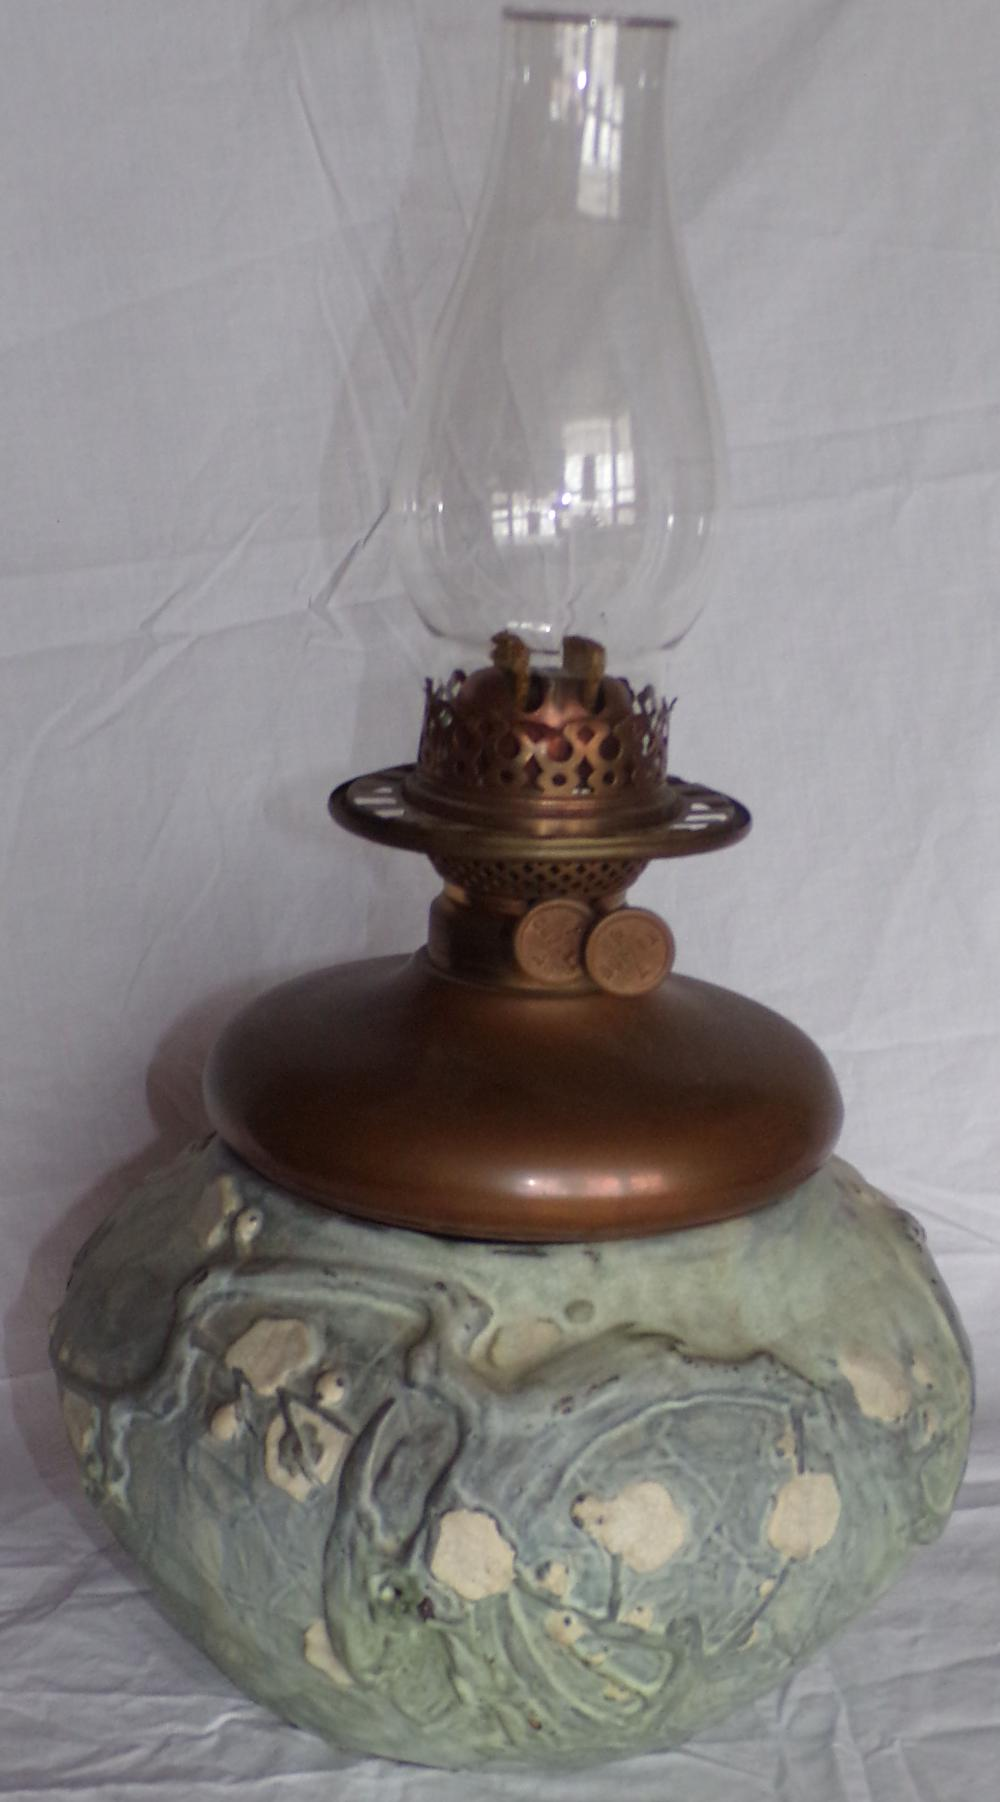 "Vintage Duplex oil lamp having a copper font with glass chimney mounted in an art pottery planter form base, approx. 18"" T(with chimney) x 9 ¾"" diameter"